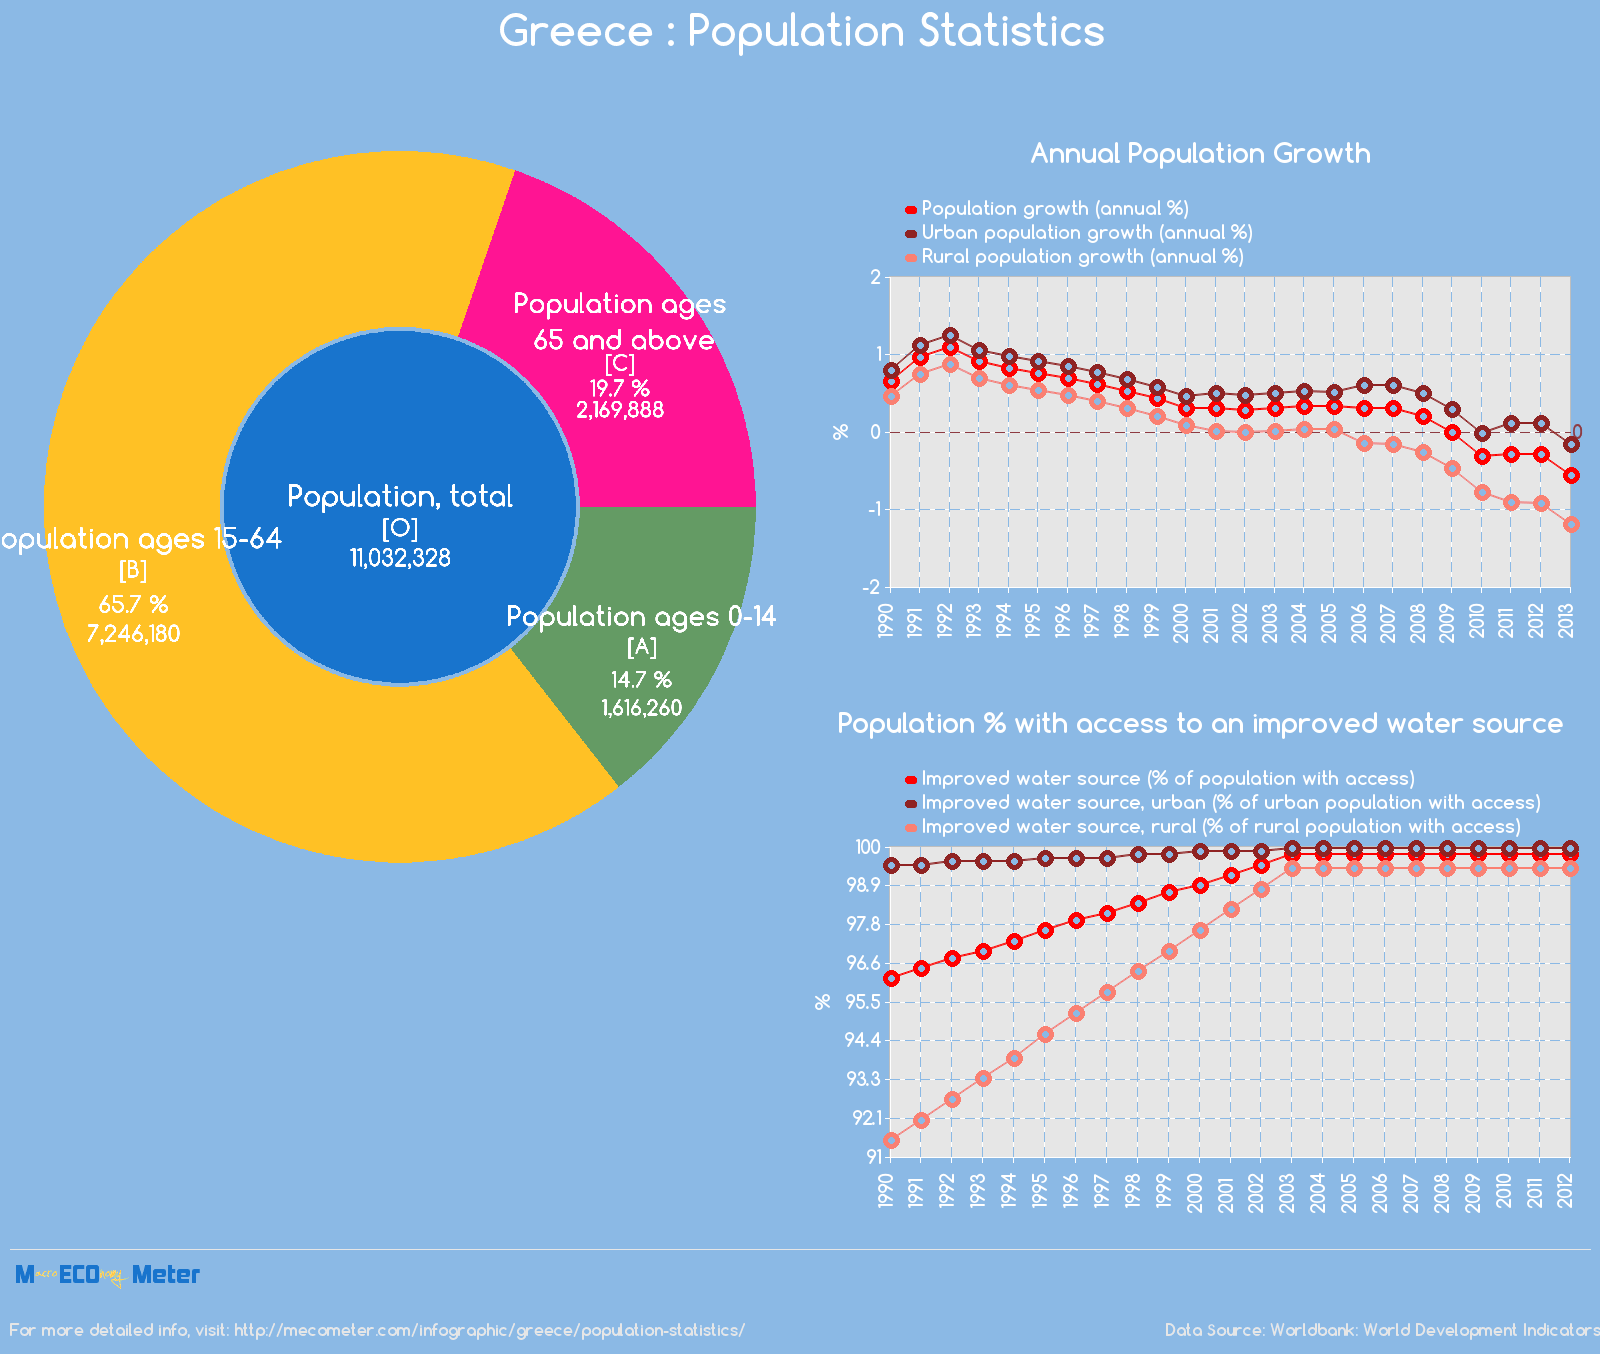 Greece : Population Statistics